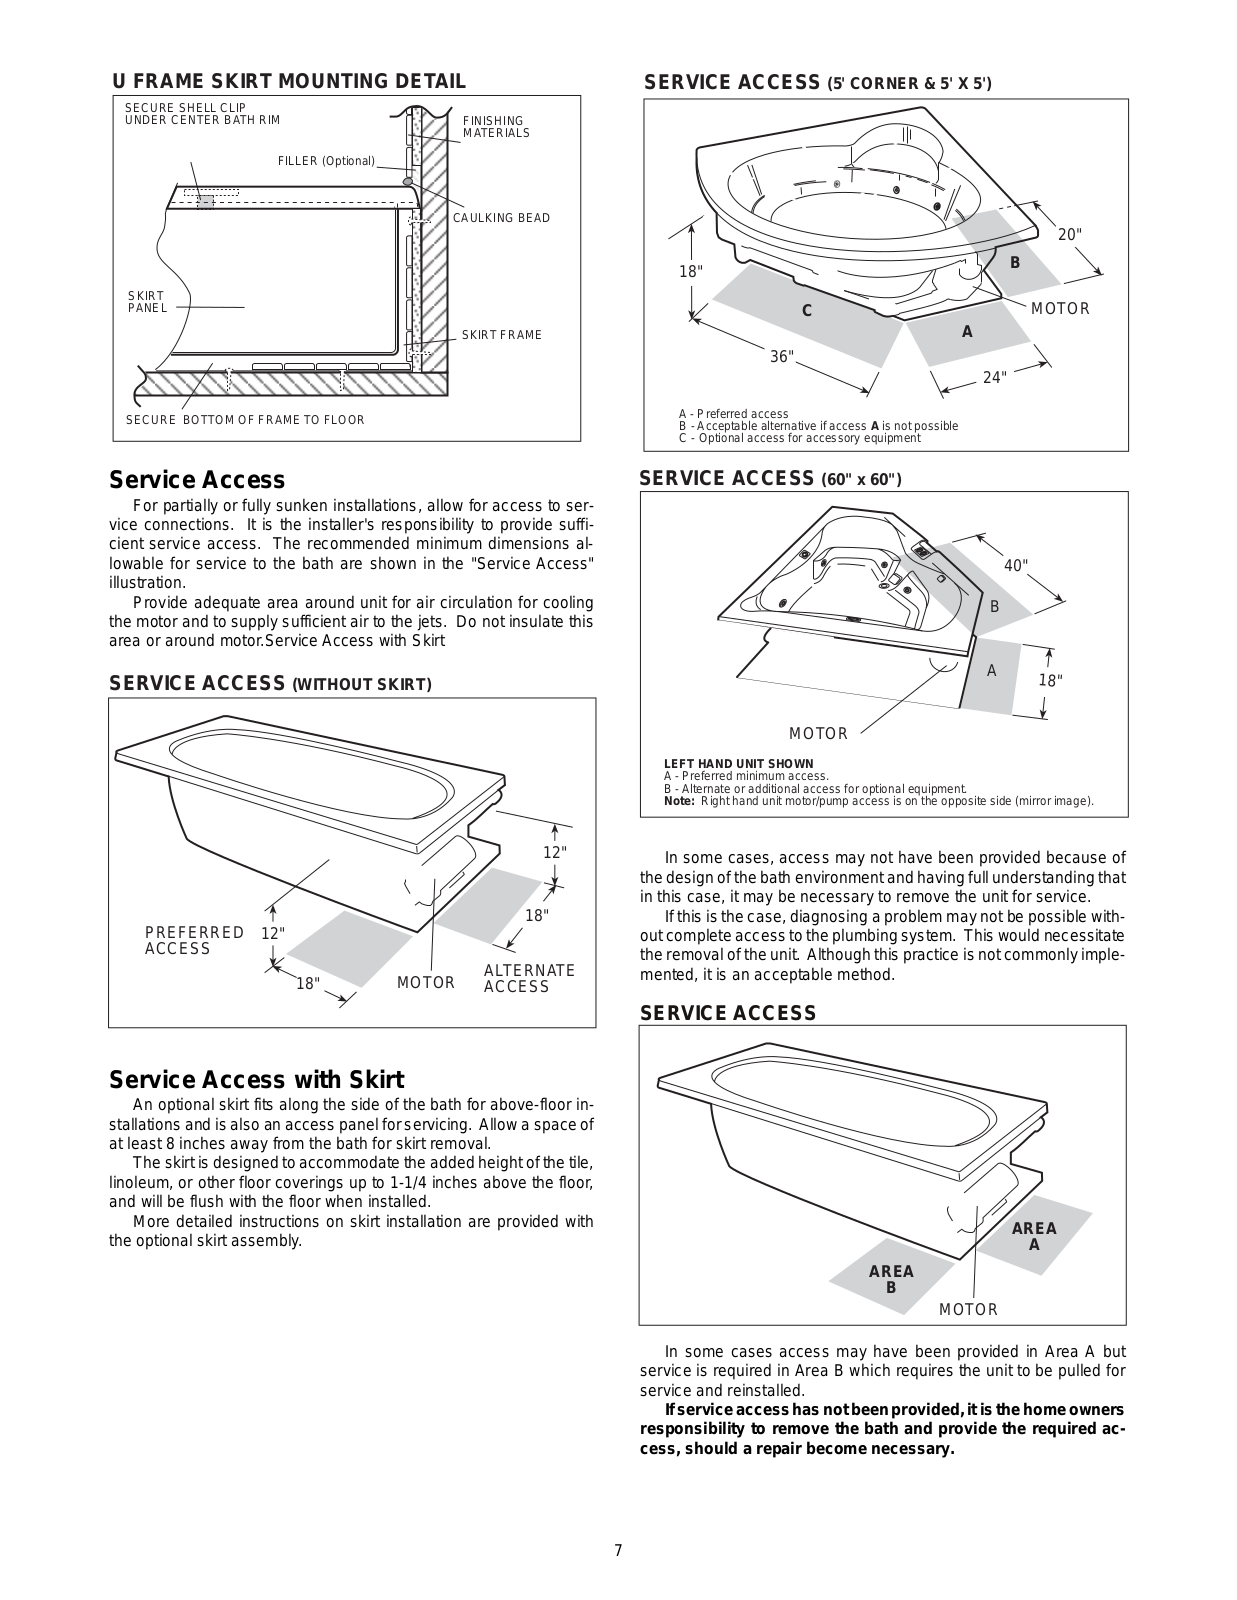 How A Bathtub Works Manual Guide